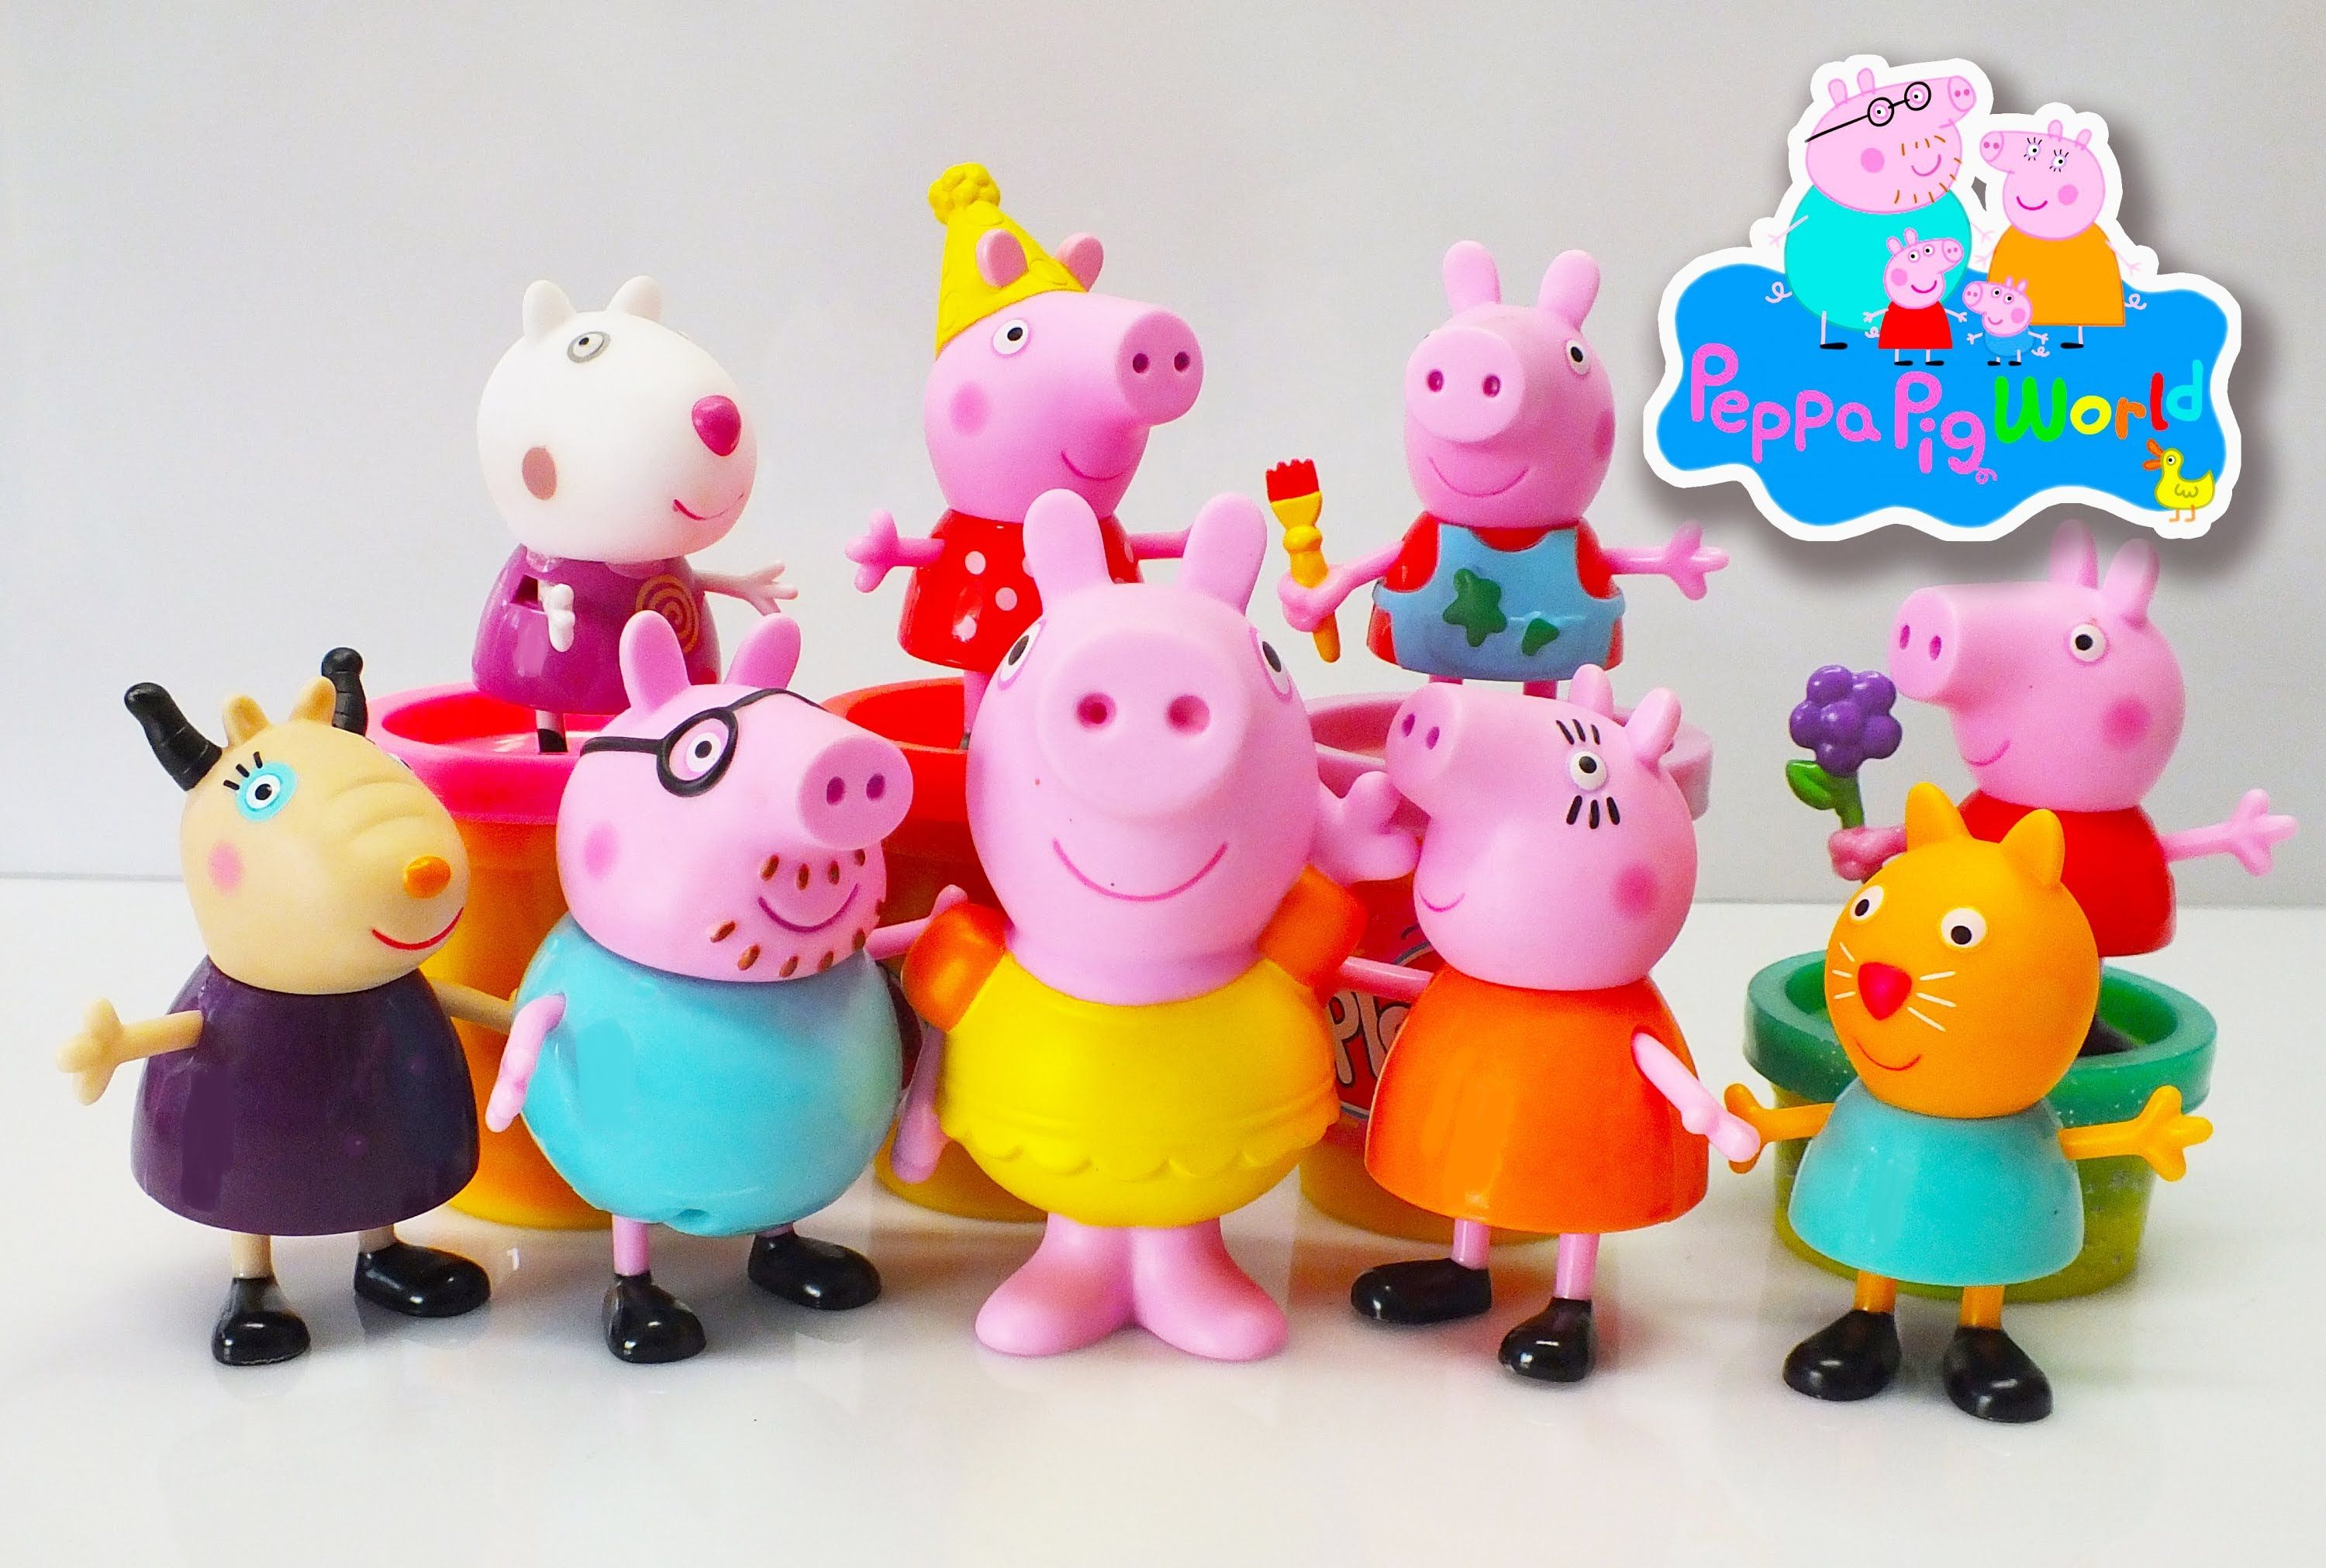 Peppa Pig Toys 2015 ❤ Play doh 2015 ❤ Kids Fun Peppa Pig & Play